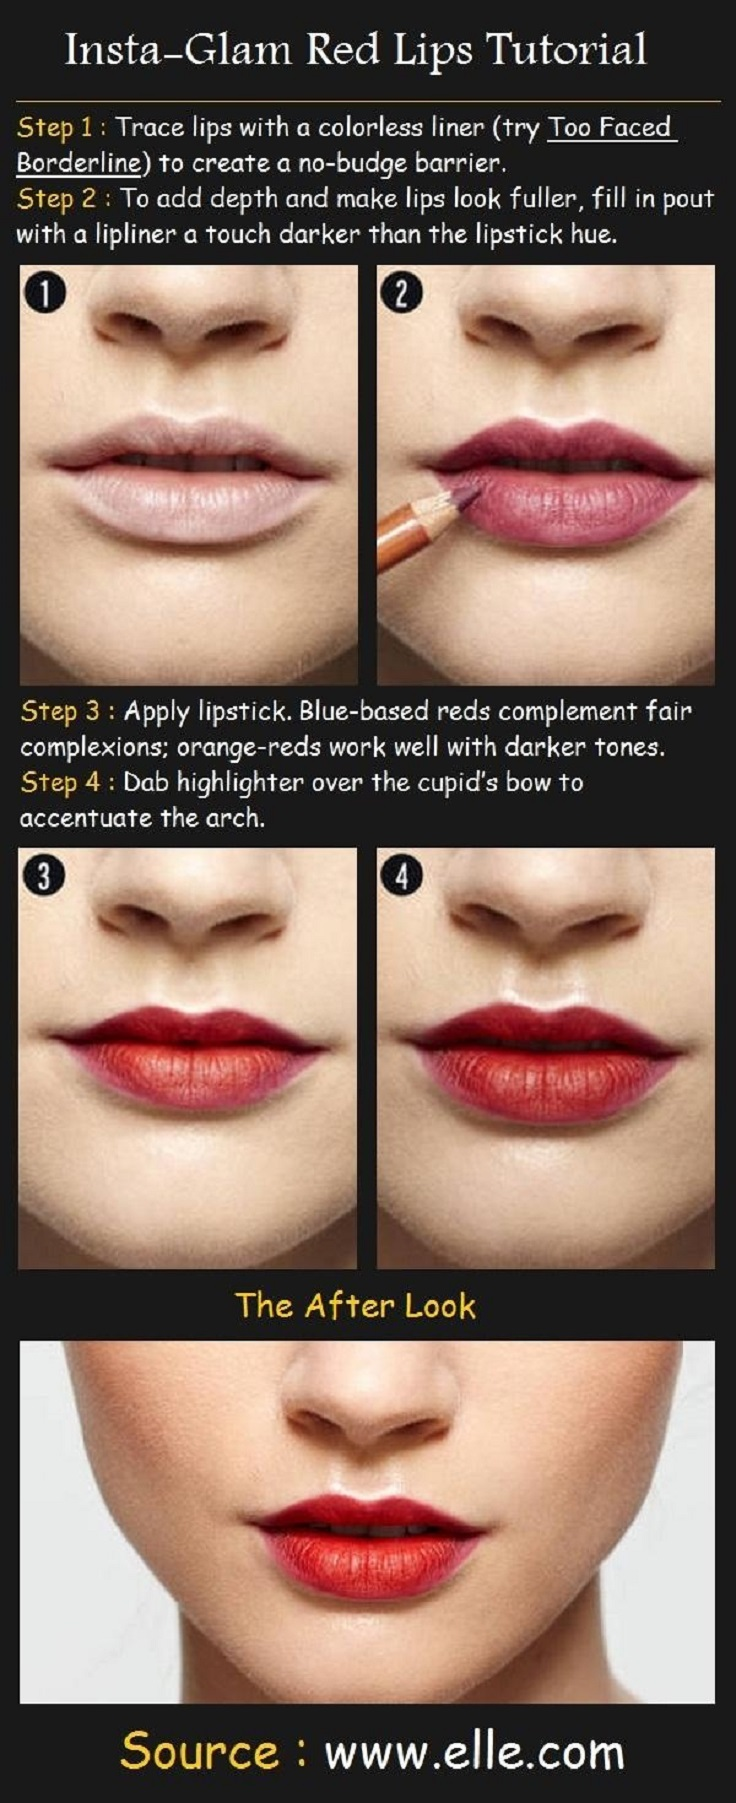 Top 10 tutorials for perfect lipstick top inspired top 10 tutorials for perfect lipstick baditri Image collections